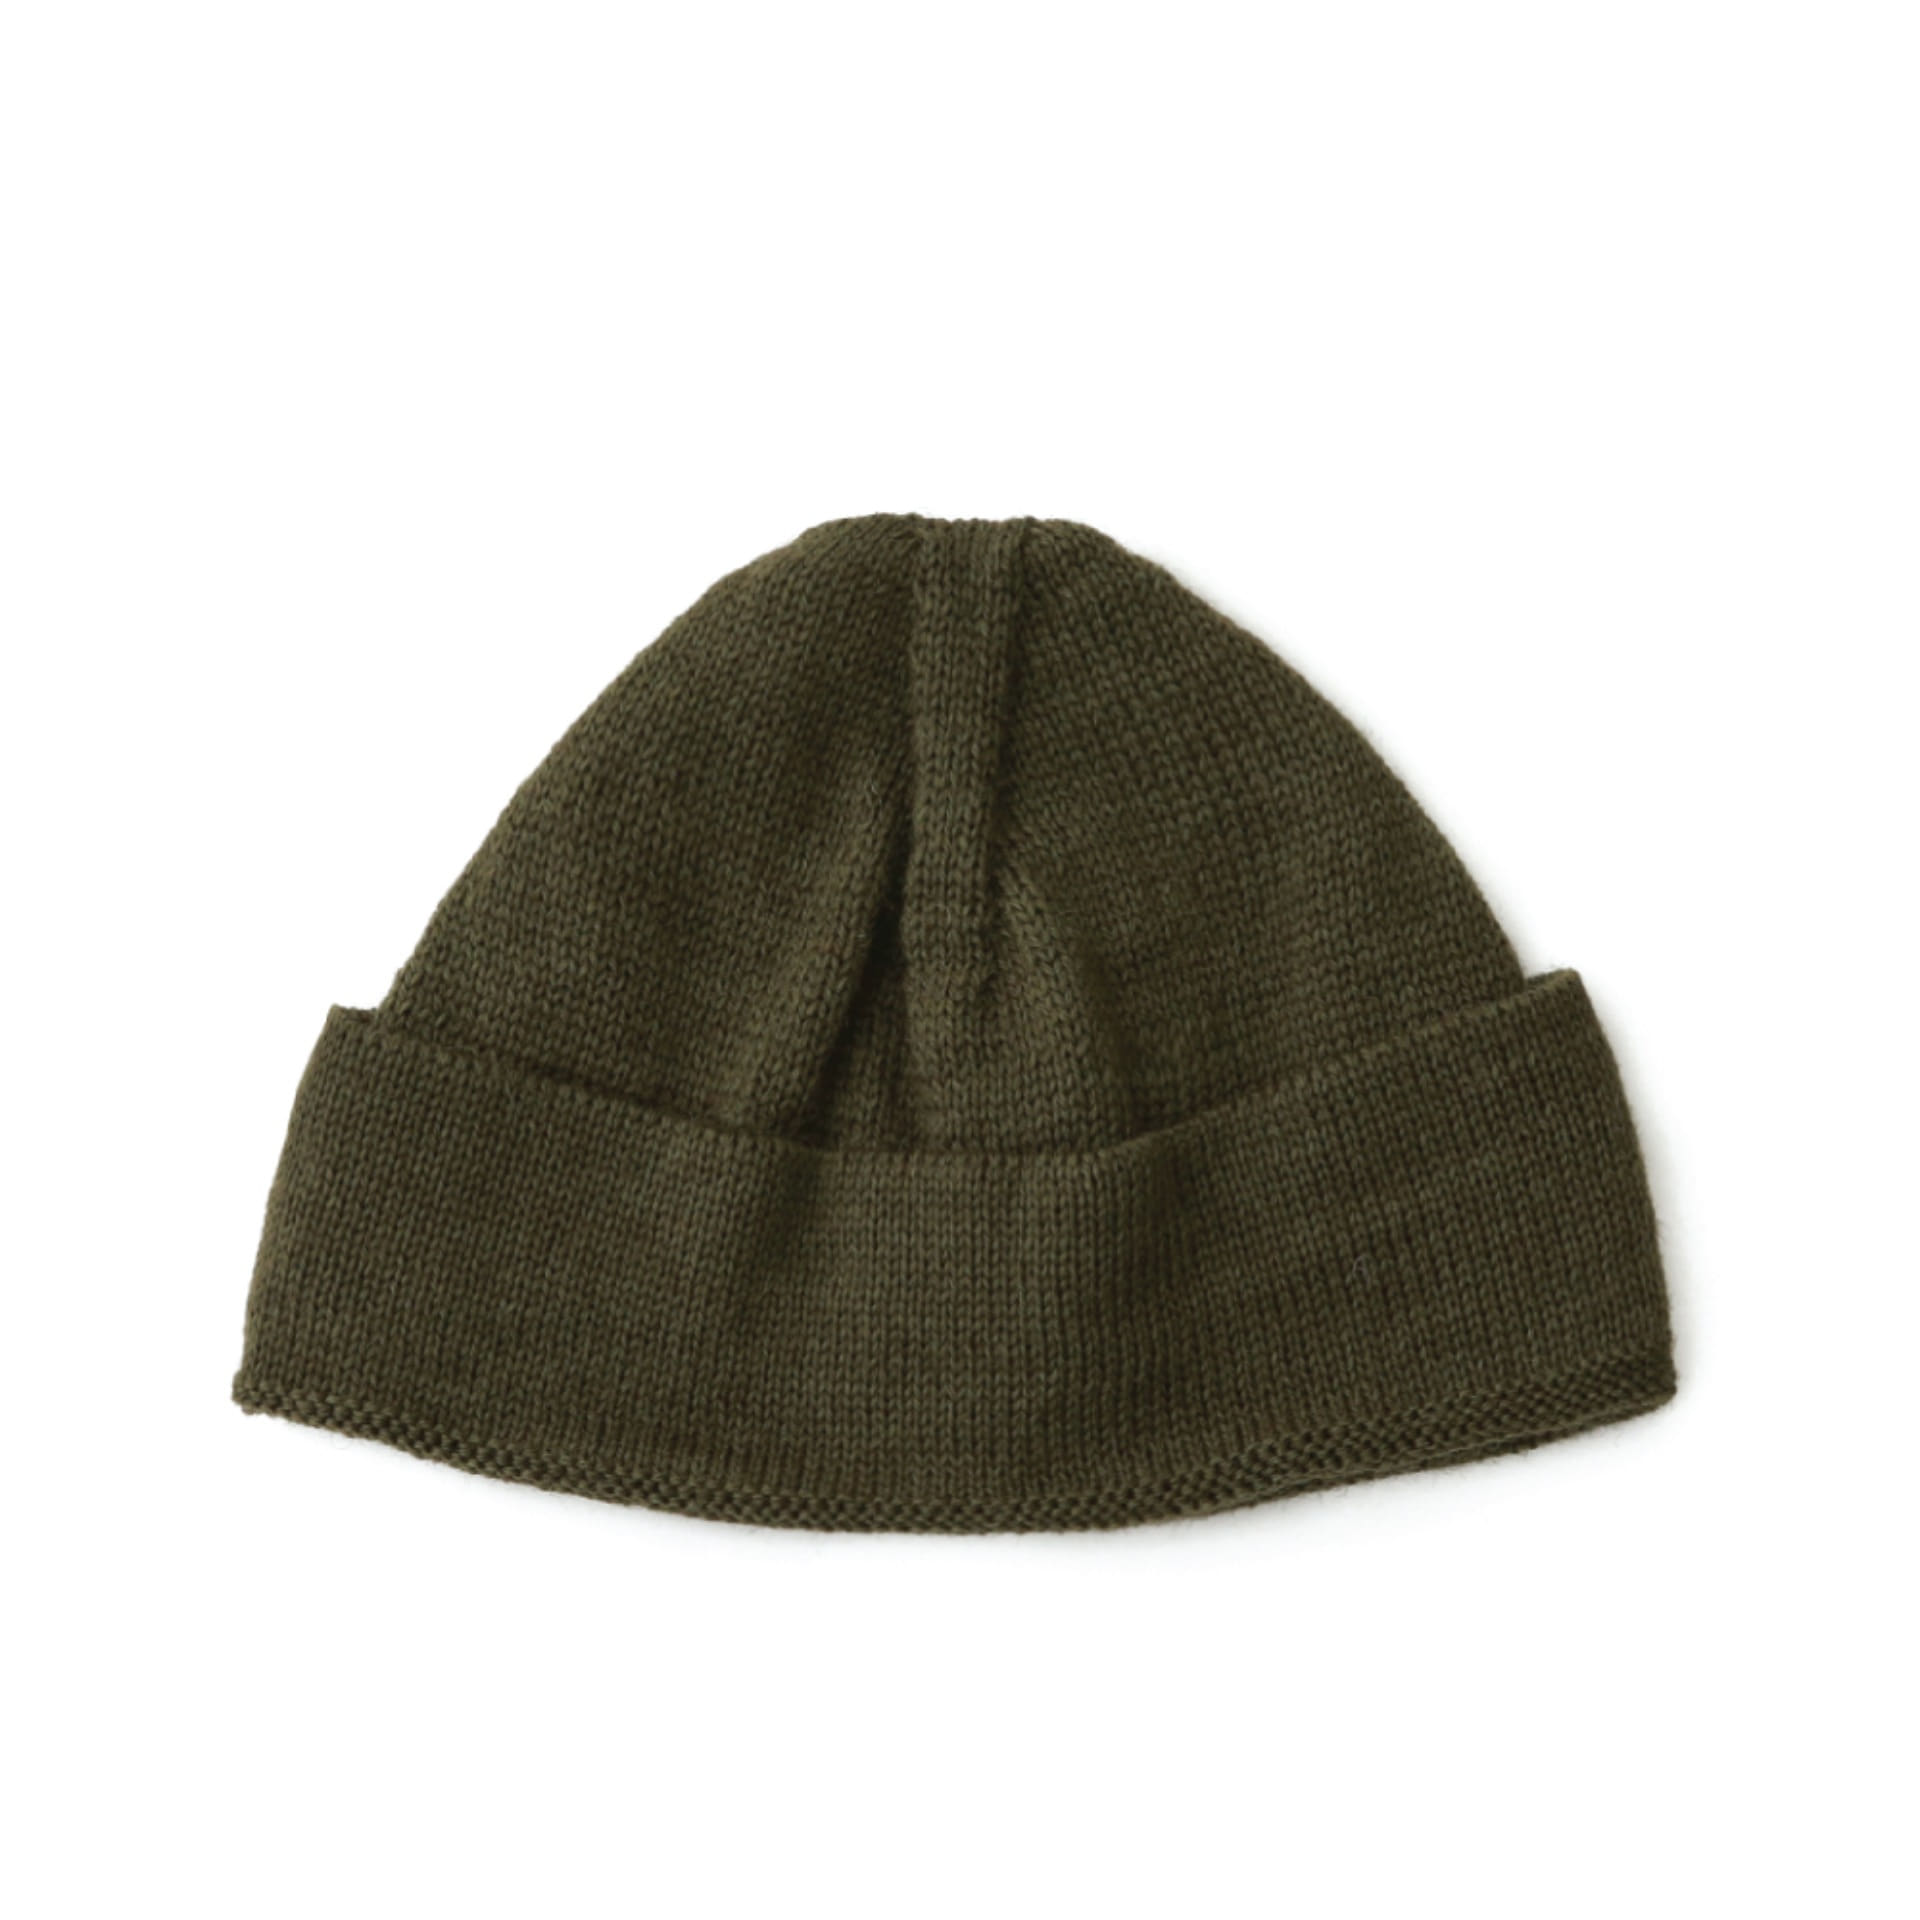 WATCH CAP (US ARMY OLIVE)